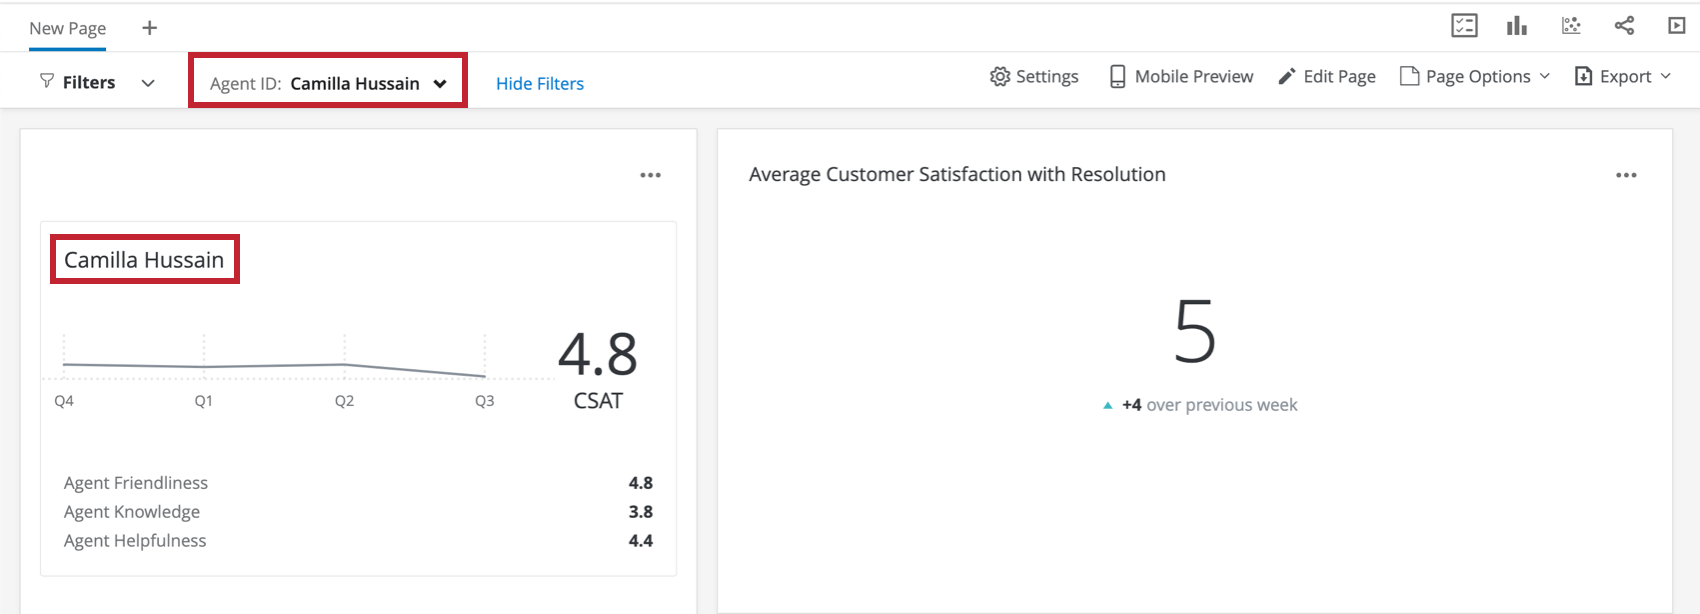 An image of a dashboard where the filter is configured to a given rep, making the info shown in widgets limited to that person